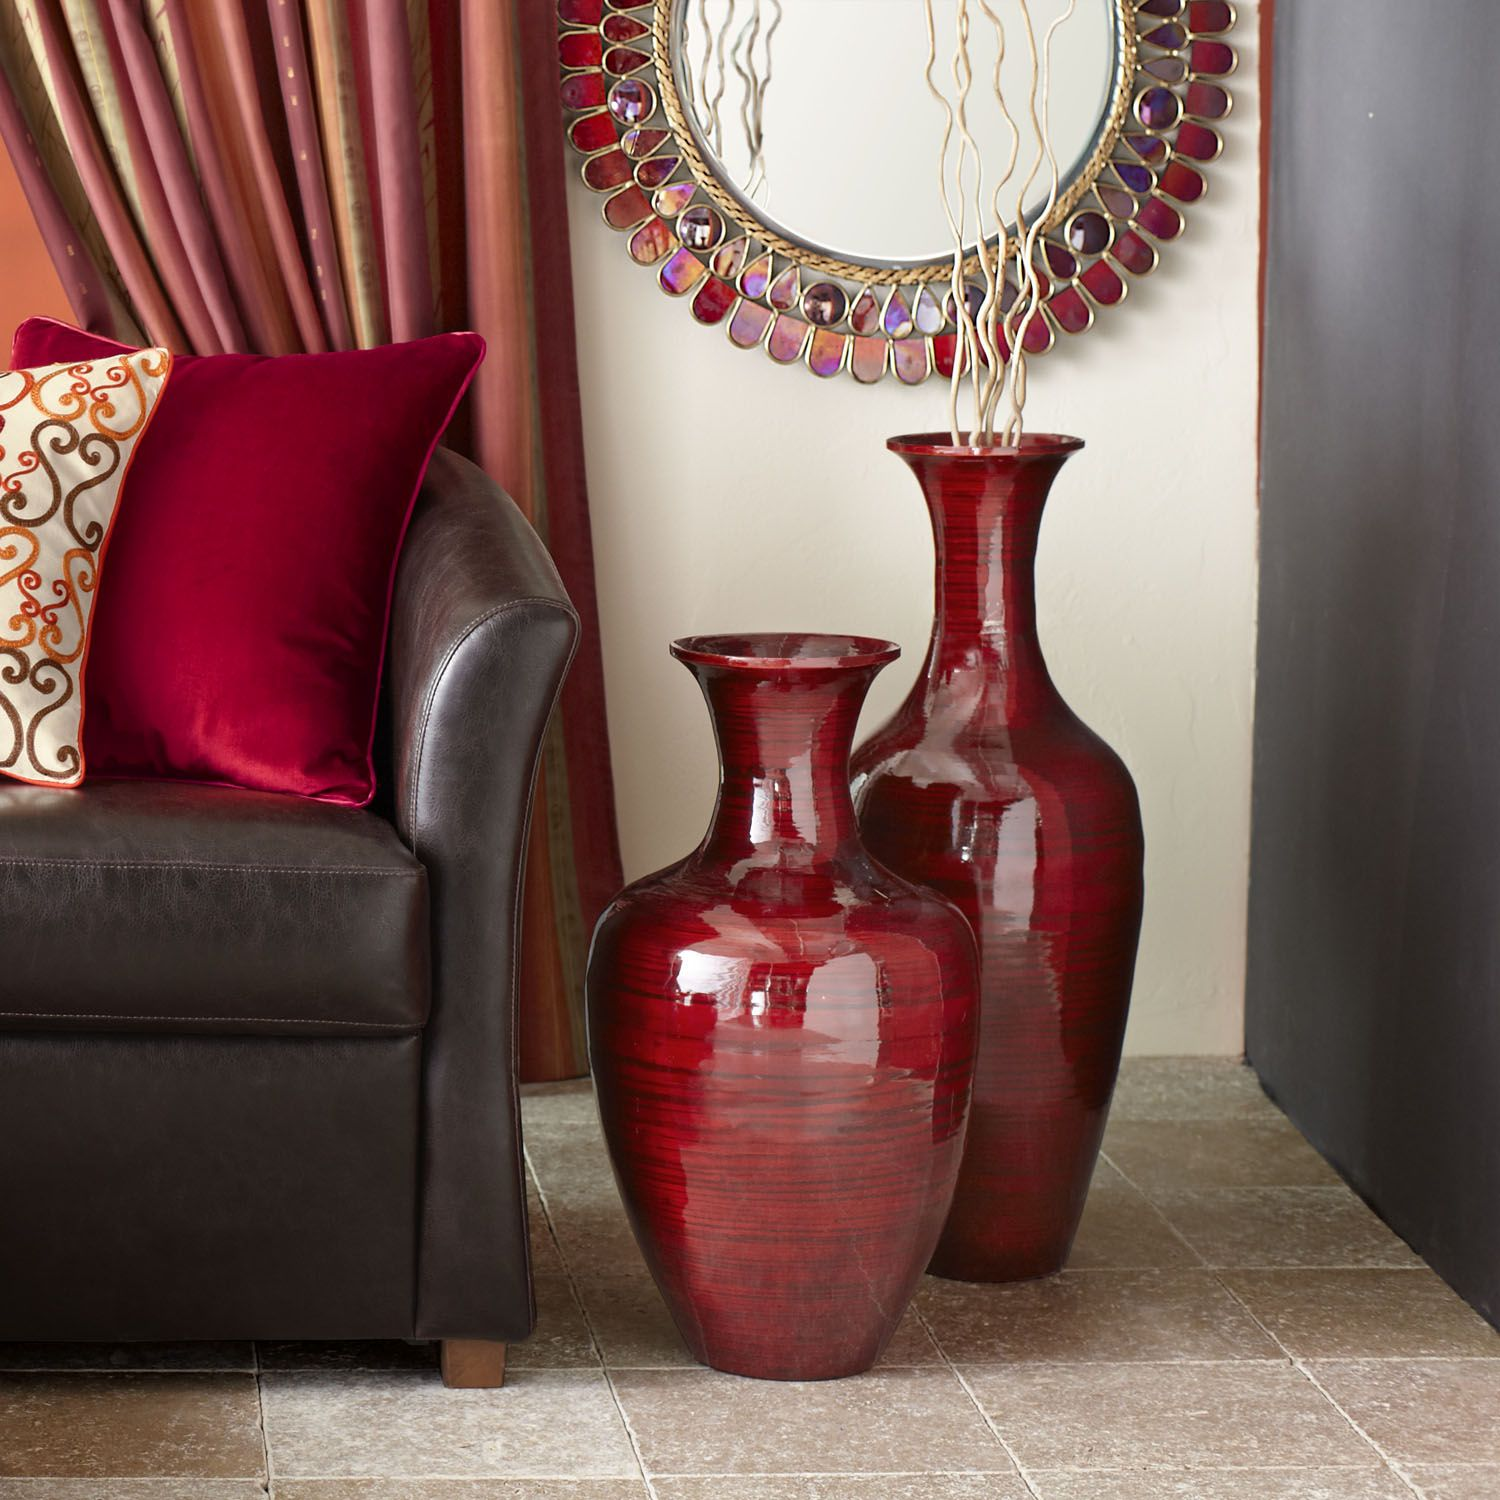 Glossy Red Bamboo Urns Red Living Room Decor Living Room Red Red Home Decor #red #living #room #accessories